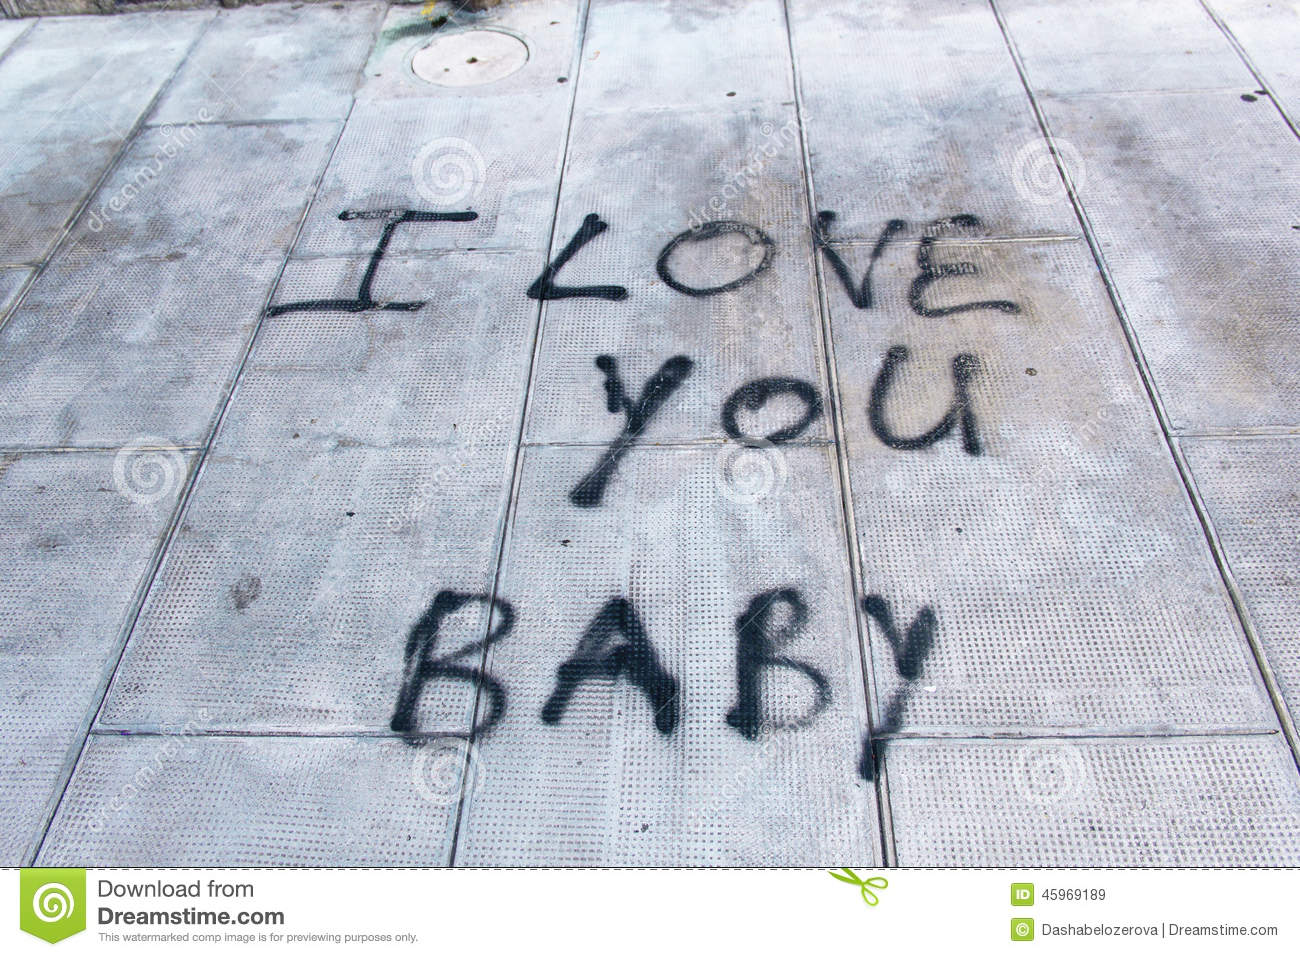 Graffiti on sidewalk i love you baby at day royalty free stock images